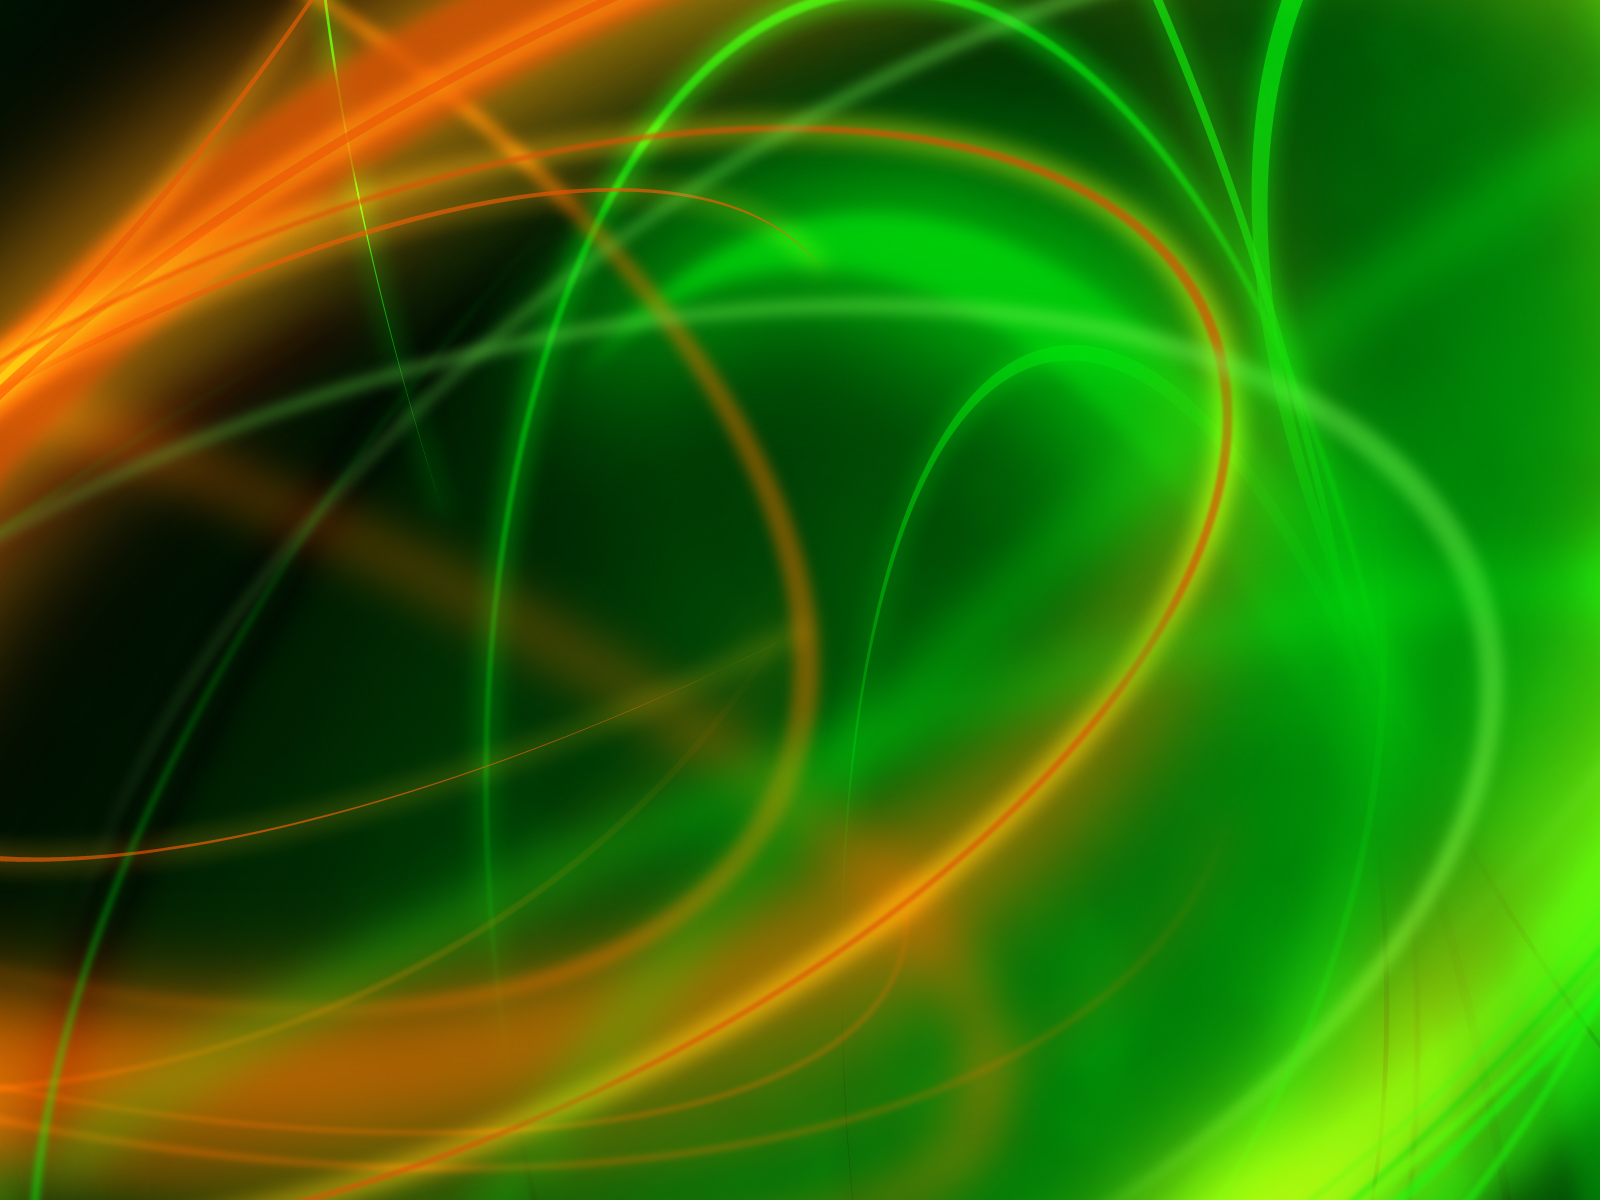 Ubuntu Apple Green Abstract Wallpaper Wallpaper